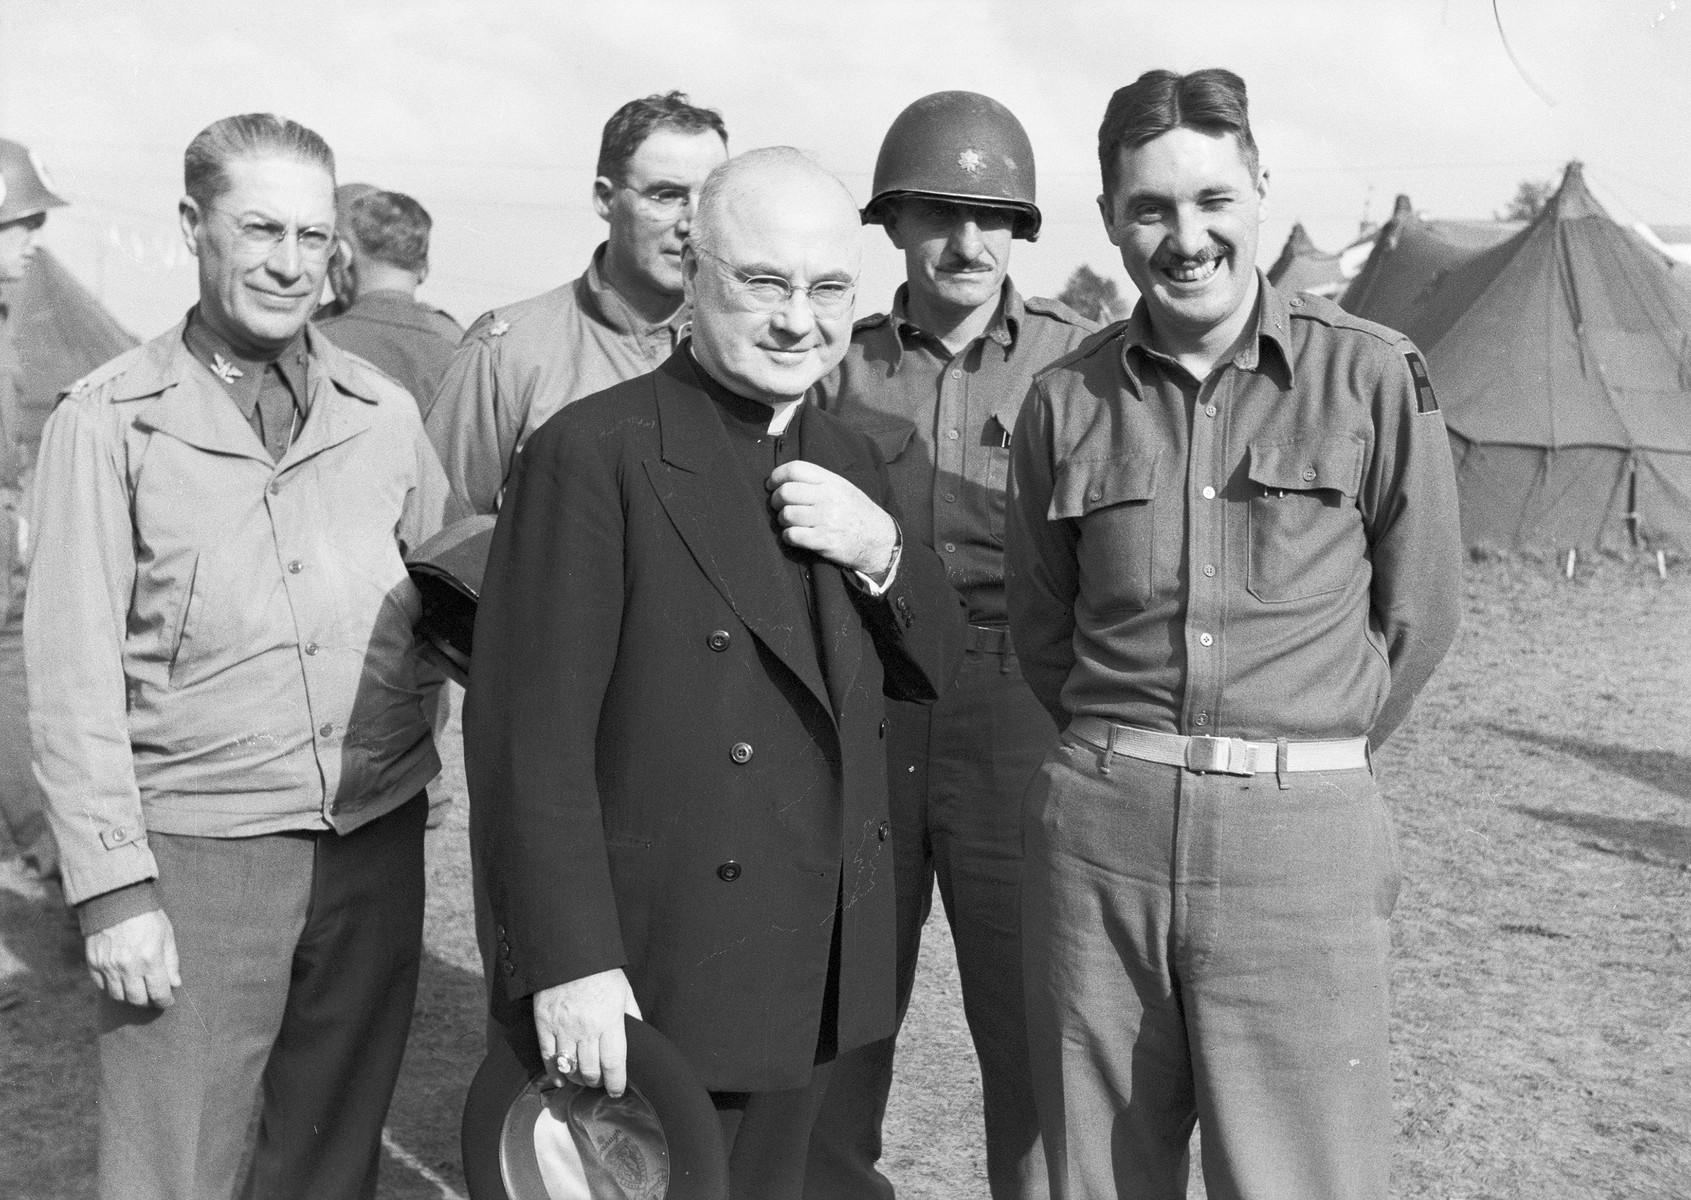 Archbishop Francis J. Spellman poses with American servicemen after the Invasion of Normandy.    Spellman, as military vicar of the United States armed forces, traveled extensively throughout WWII.  During this time he met with military leaders and heads of state, bas well as American servicemen fighting in all theaters of the war.